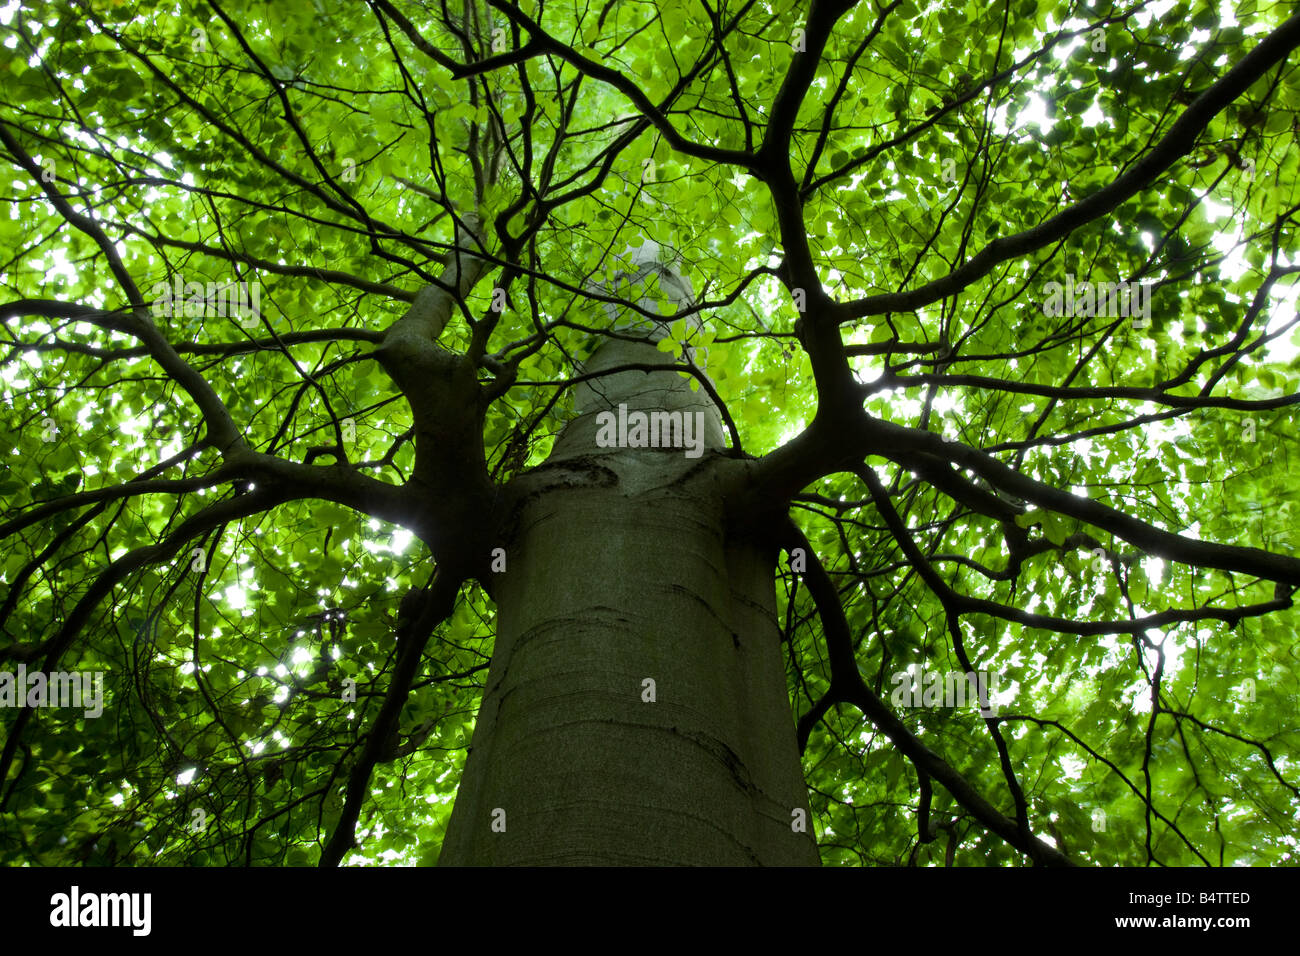 UK Interior of Beech wood - Stock Image